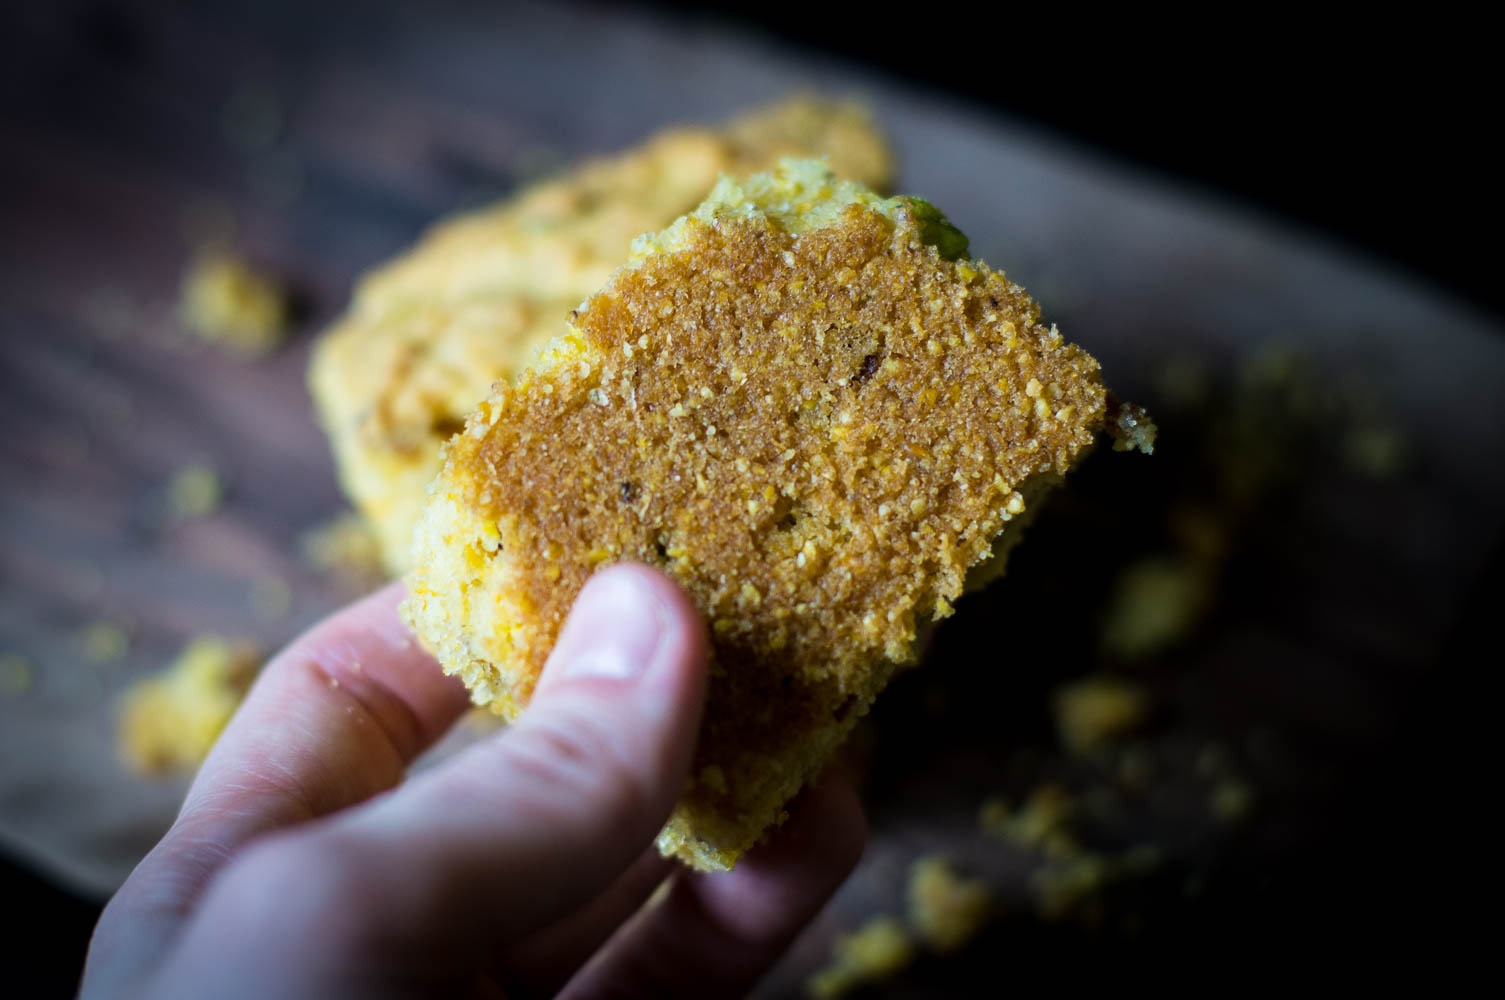 Look at that beautiful crispy brown crust on the bottom of the cornbread!